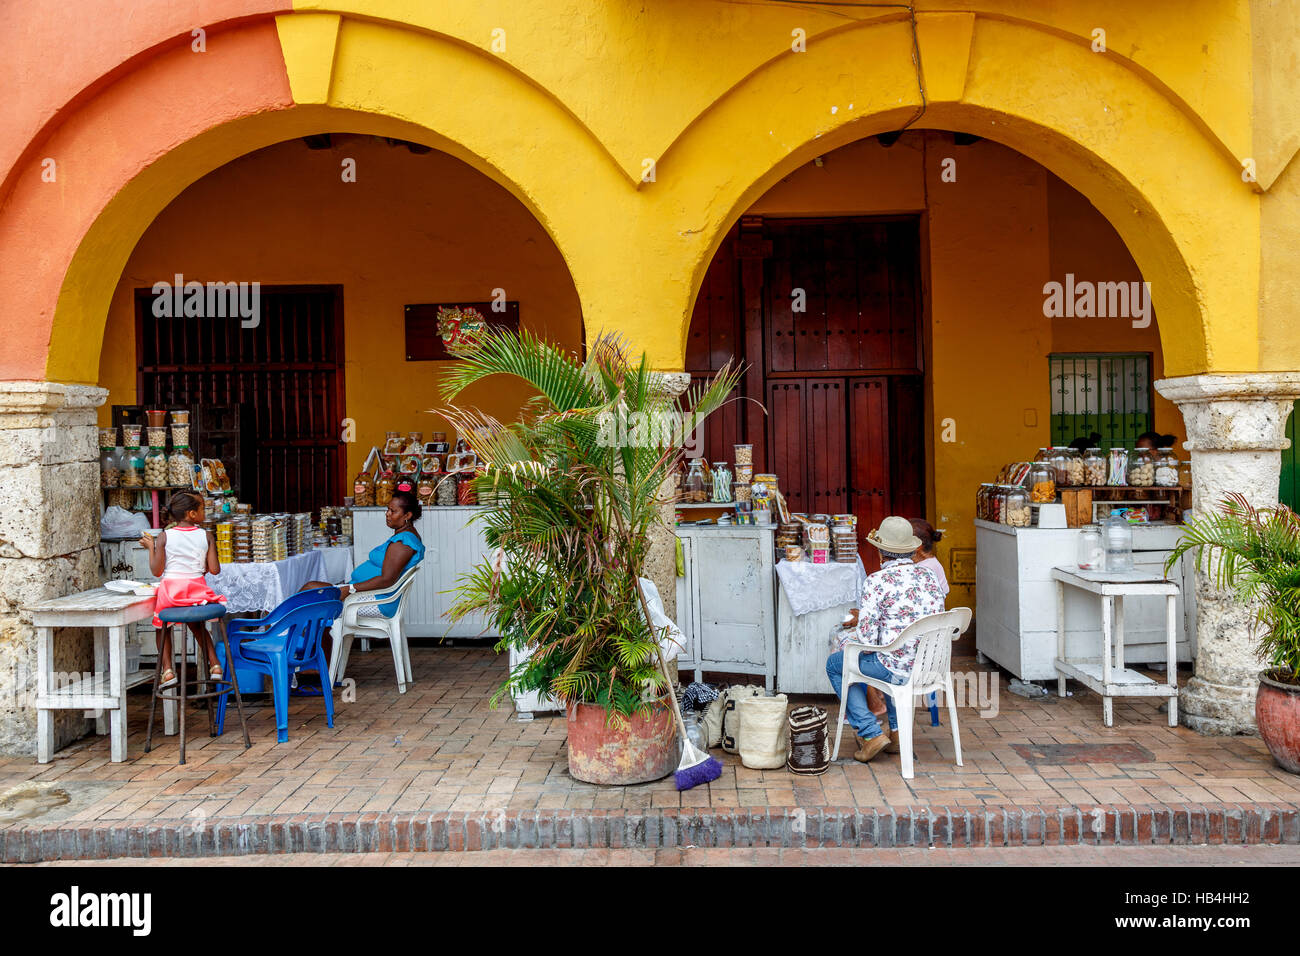 Locals sit by the store set out under the arches of a yellow building Cartagena, Colombia - Stock Image